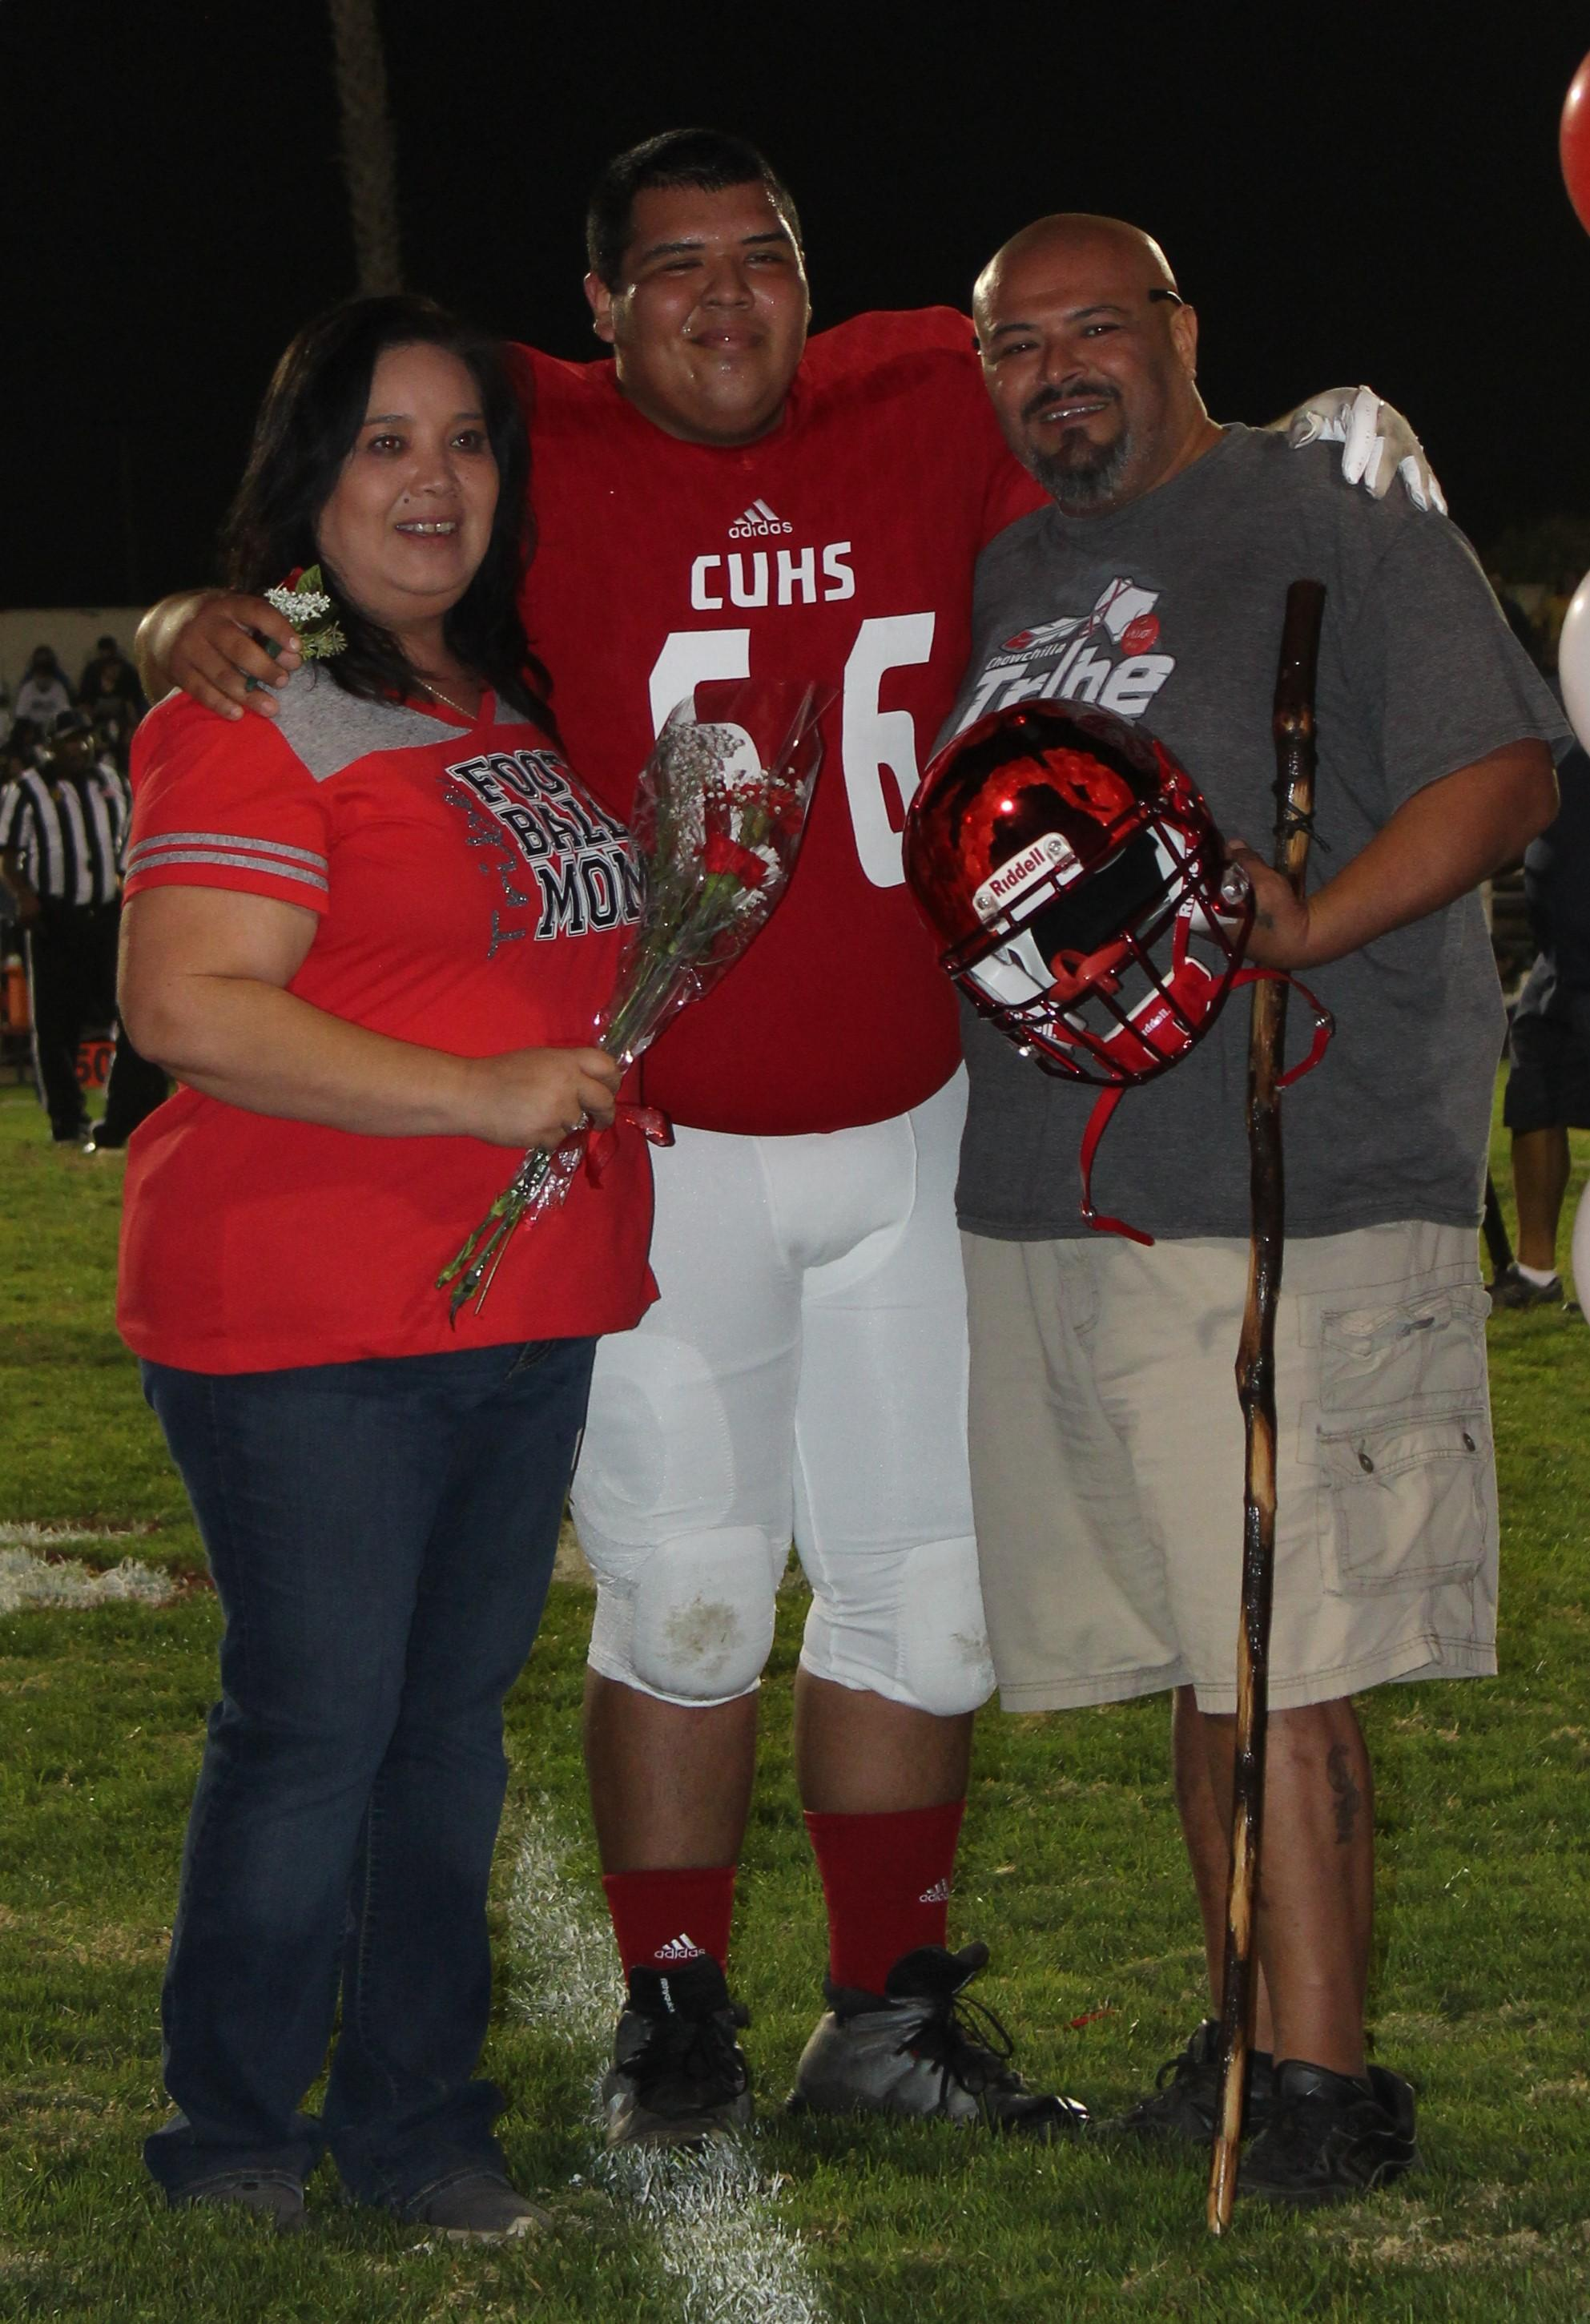 Daniel Vellejo and his supporters at Senior Night